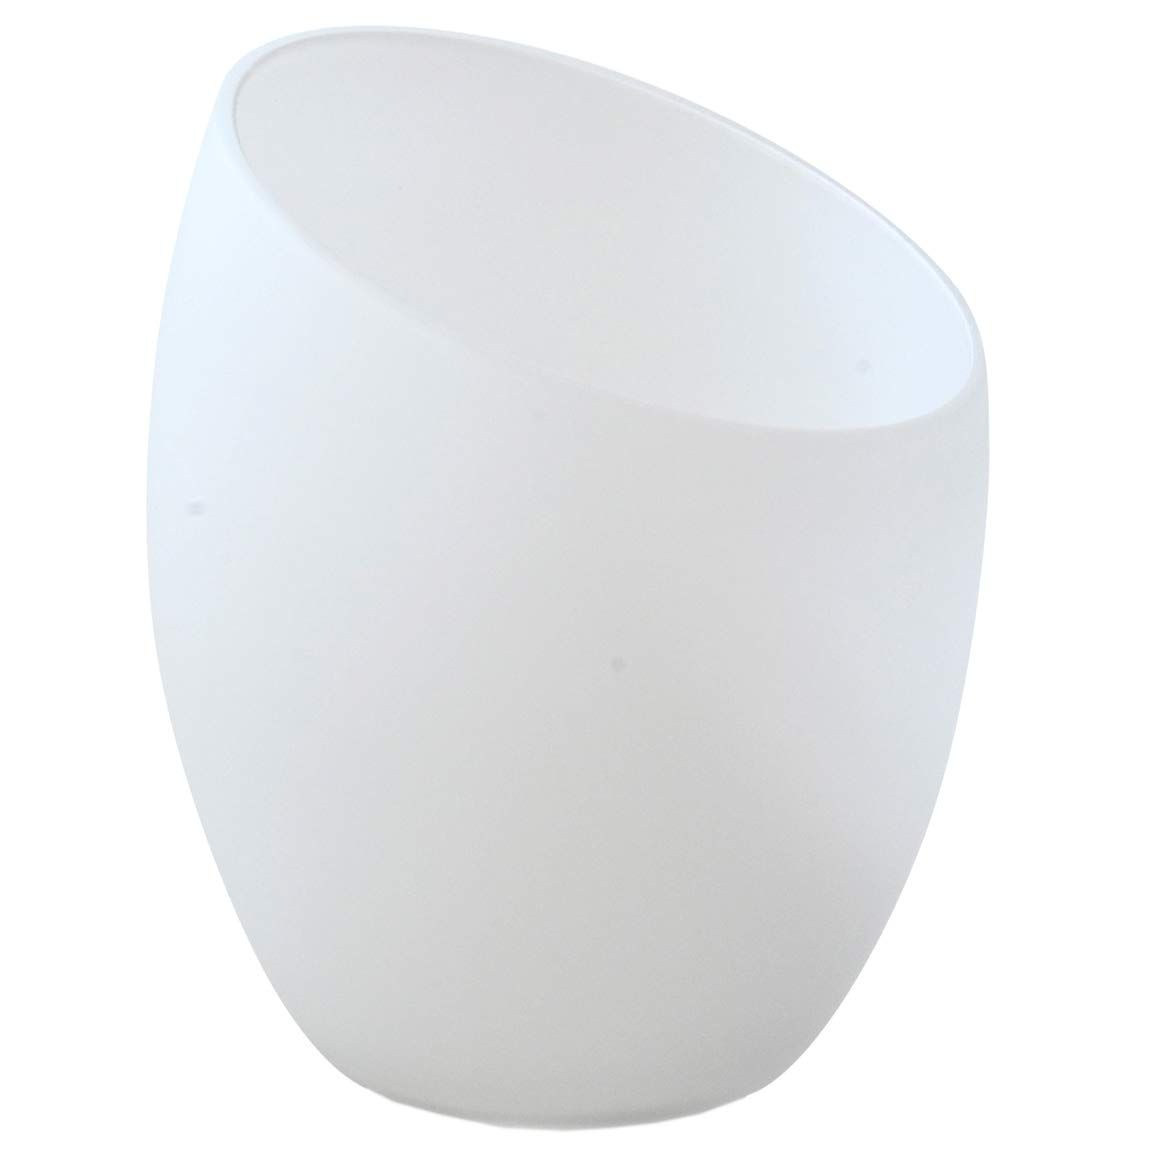 Room Basics Modern Frosted Glass Shade Replacement For Floor Lamps Click On The Image For Additional Details In 2020 Floor Lamp Glass Lamp Replacement Lamp Shades